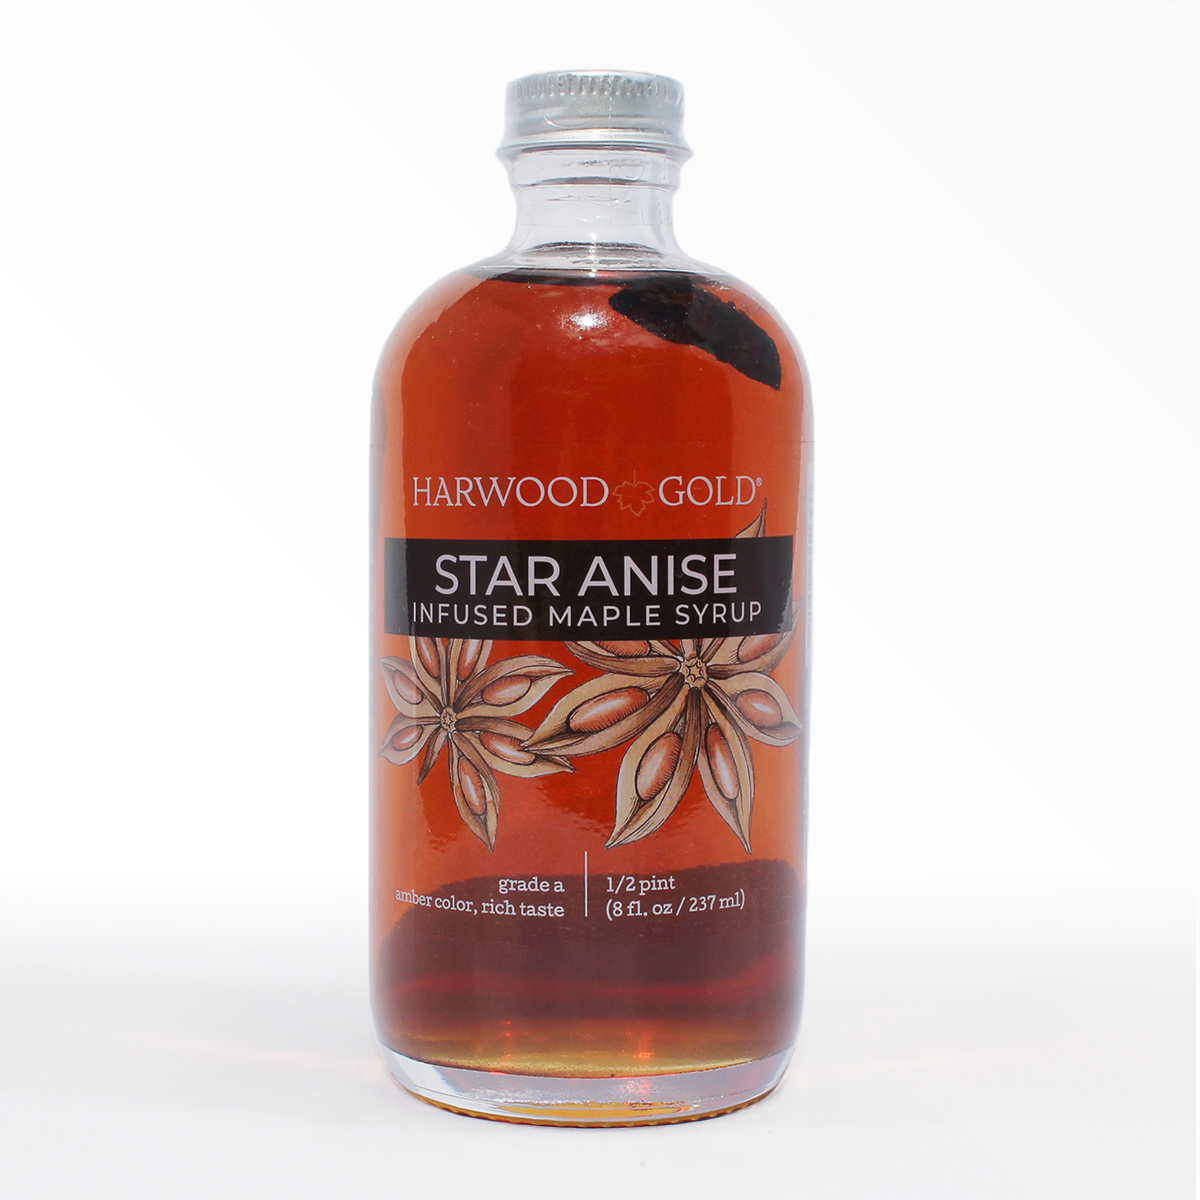 Harwood Gold Star Anise Infused Maple Syrup